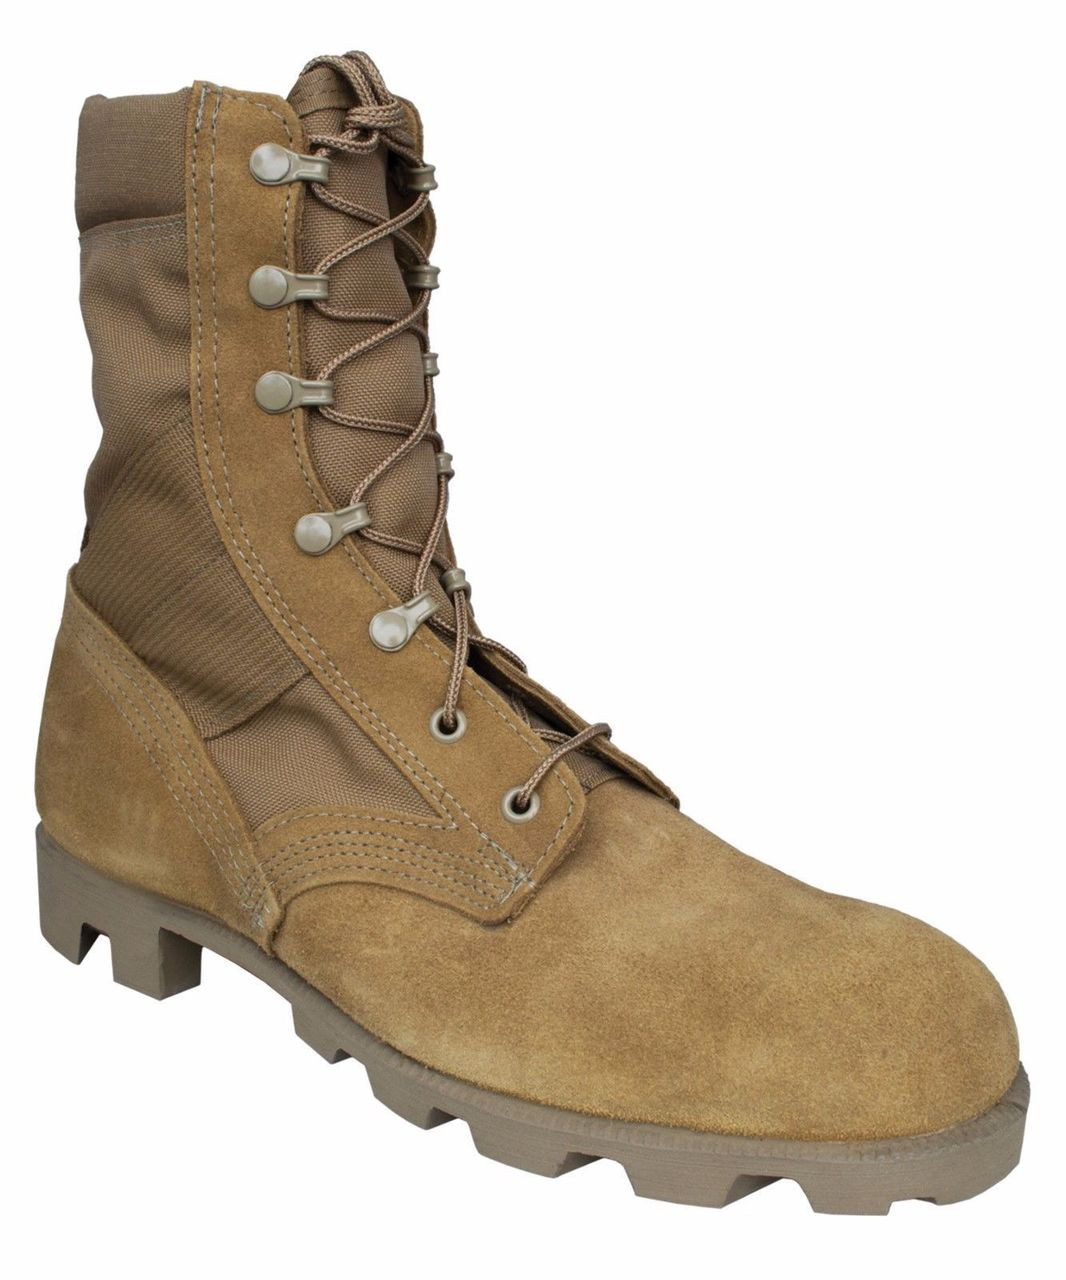 """McRae 8"""" Hot Weather Panama USA-Made Military Boots 8190 Coyote"""